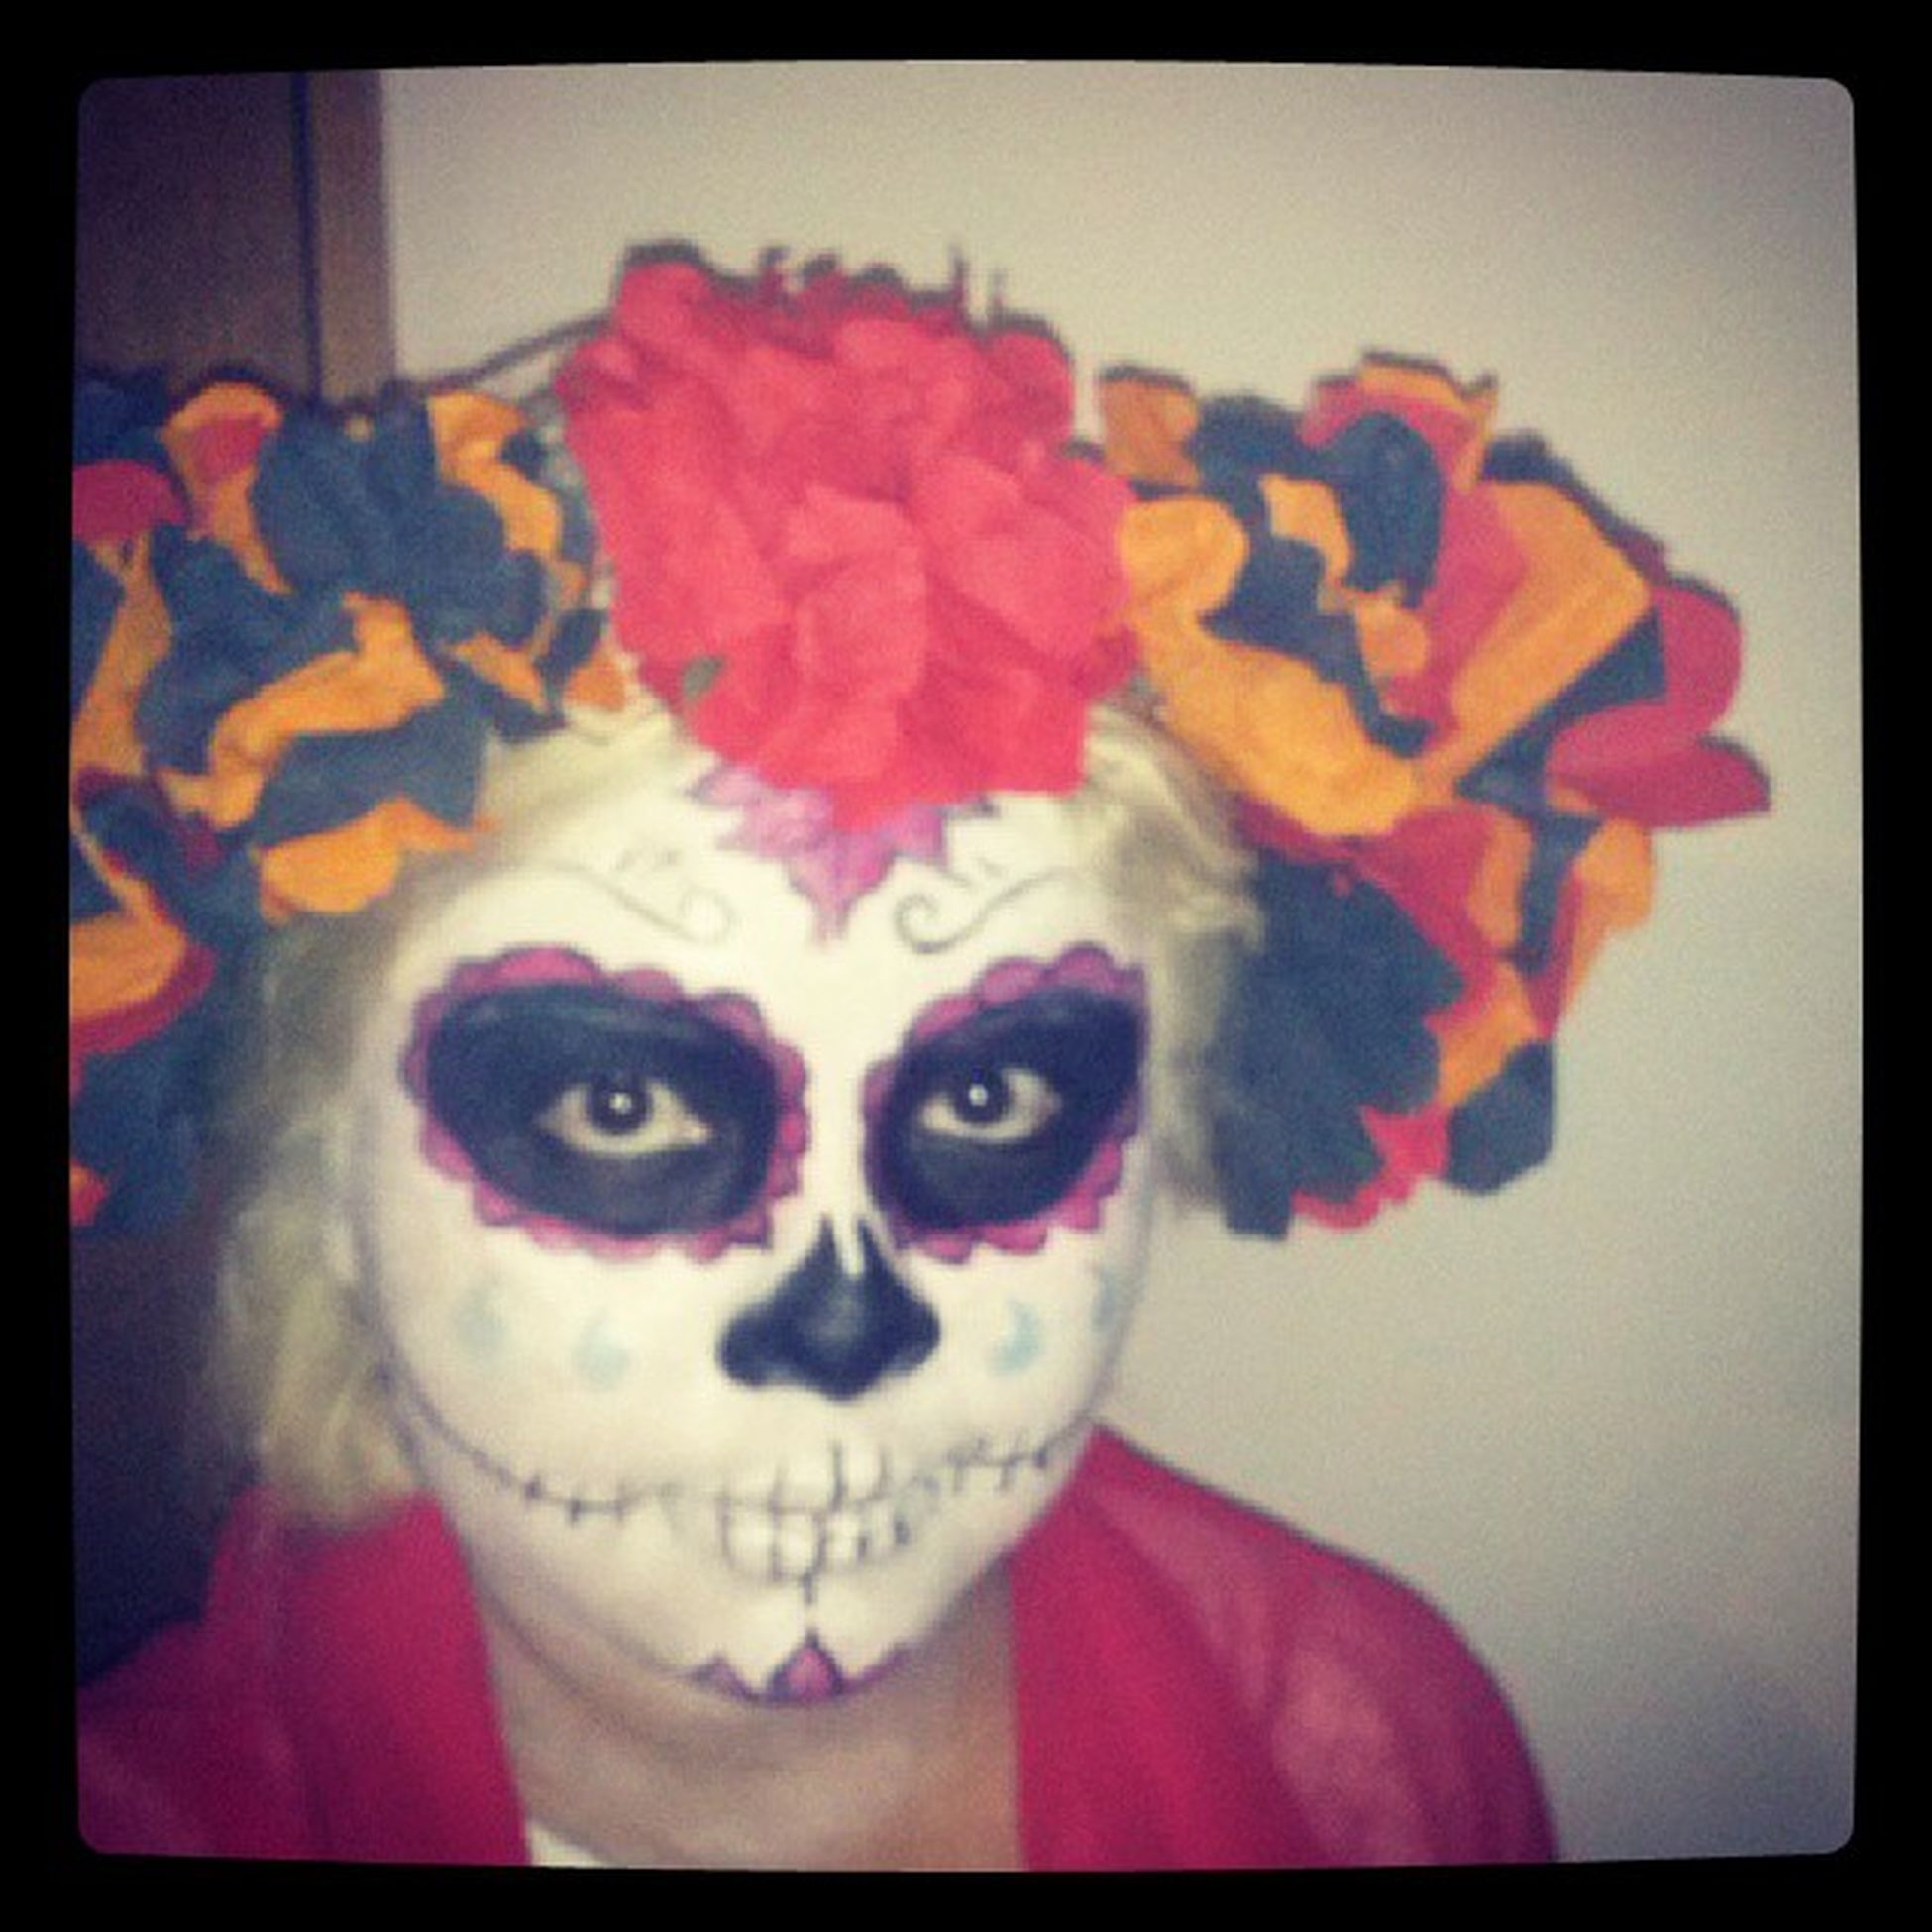 Catrina Dia_de_muertos Makeup Happytime girl mexicangirl color flowers paperflowers papel flores diy